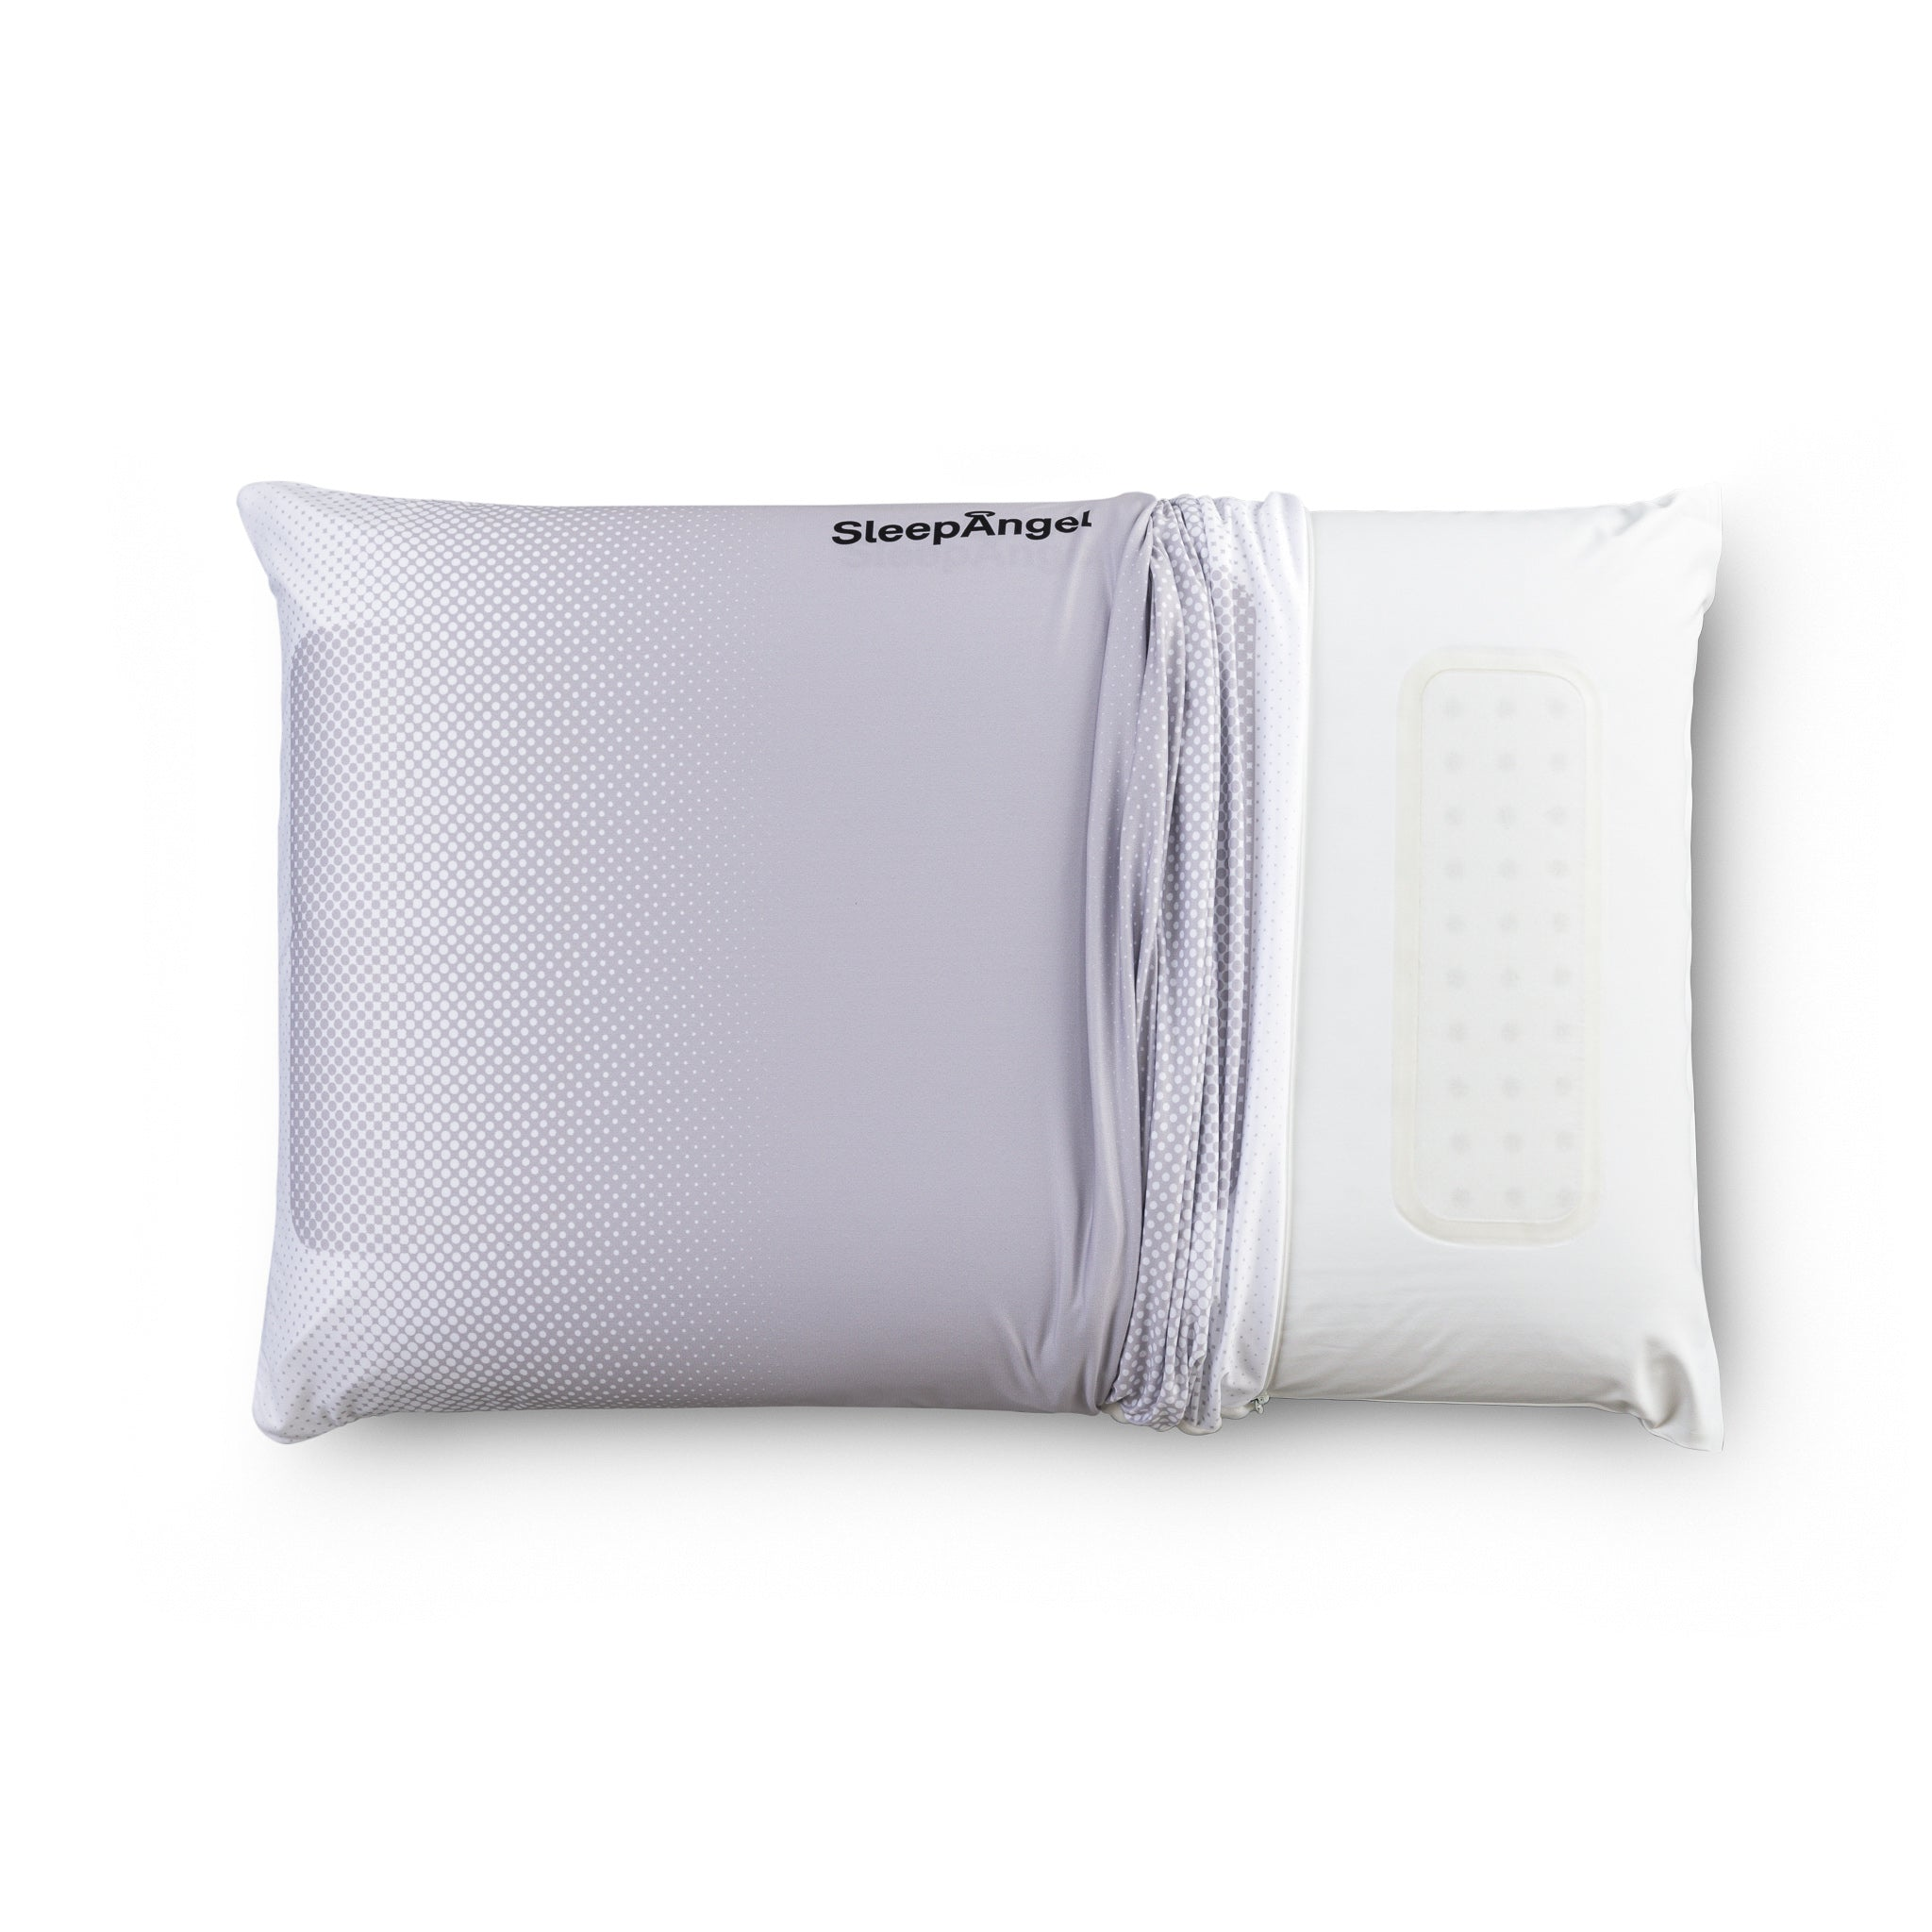 SleepAngel Memory Foam Pillow Set